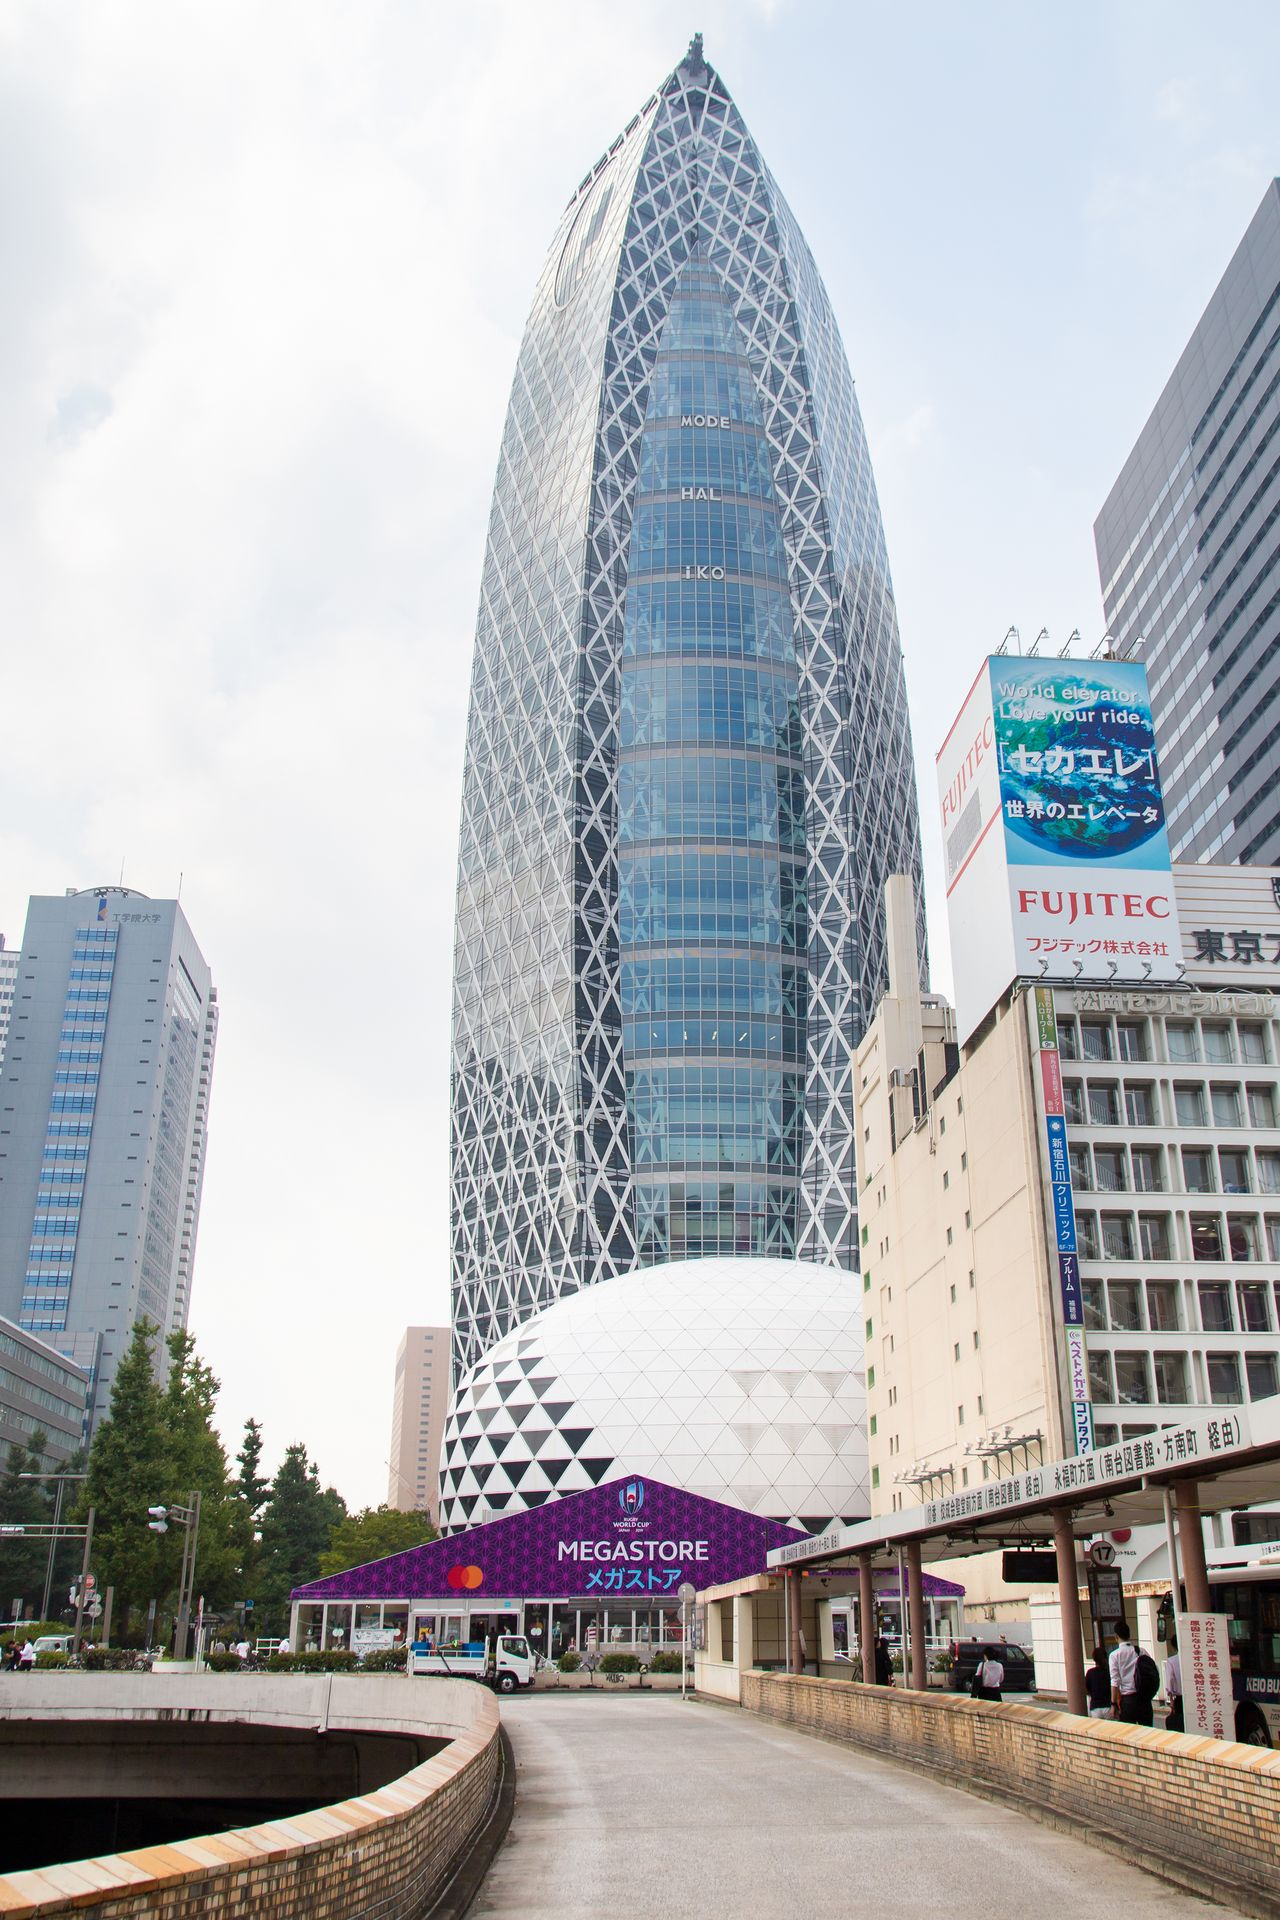 The Rugby World Cup Megastore is visible from the west exit of Shinjuku Station. The cocoon-like Mode Gakuen tower is a handy landmark.